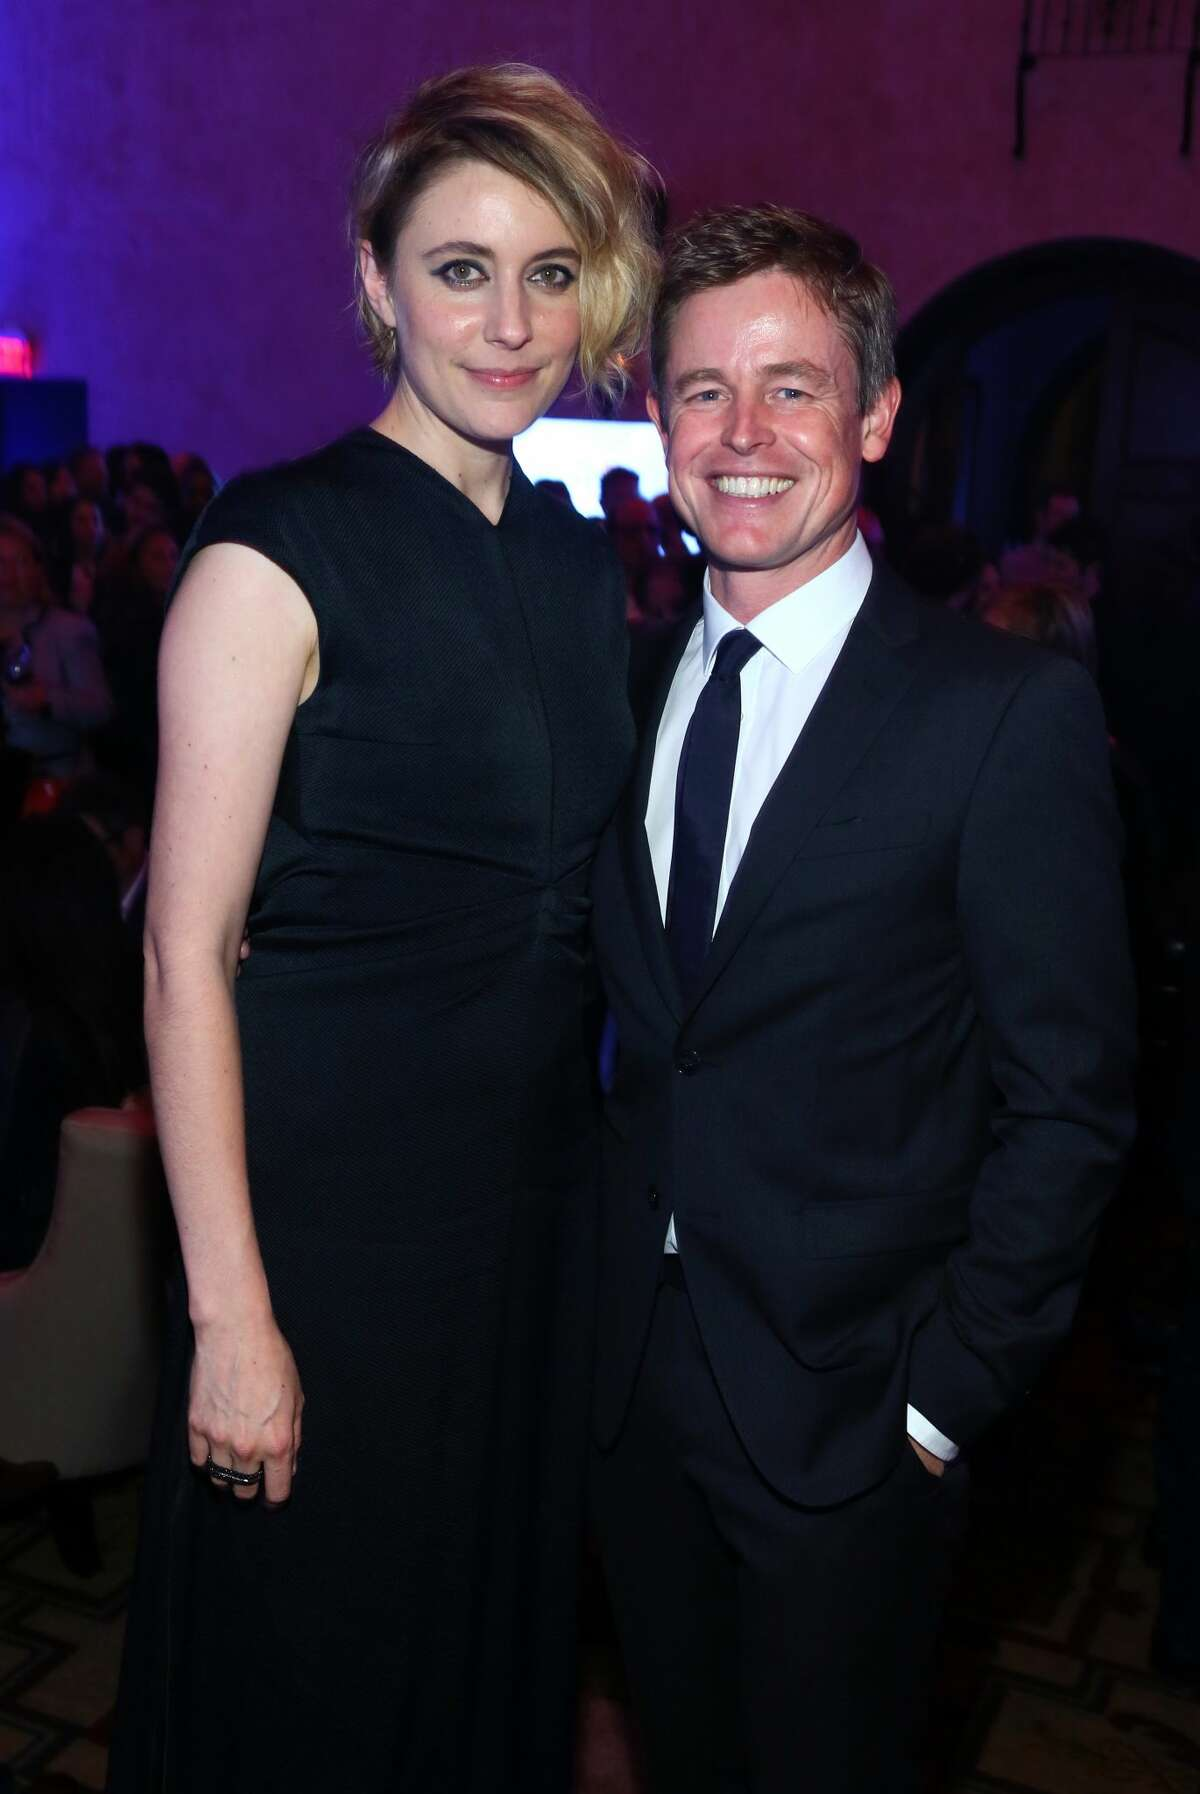 HOLLYWOOD, CA - NOVEMBER 14: Actor Greta Gerwig (L) and Caspar Phillipson attends the after party for the premiere of 'Jackie' at AFI Fest 2016, presented by Audi at The Chinese Theatre on November 14, 2016 in Hollywood, California. (Photo by Gabriel Olsen/Getty Images for AFI)